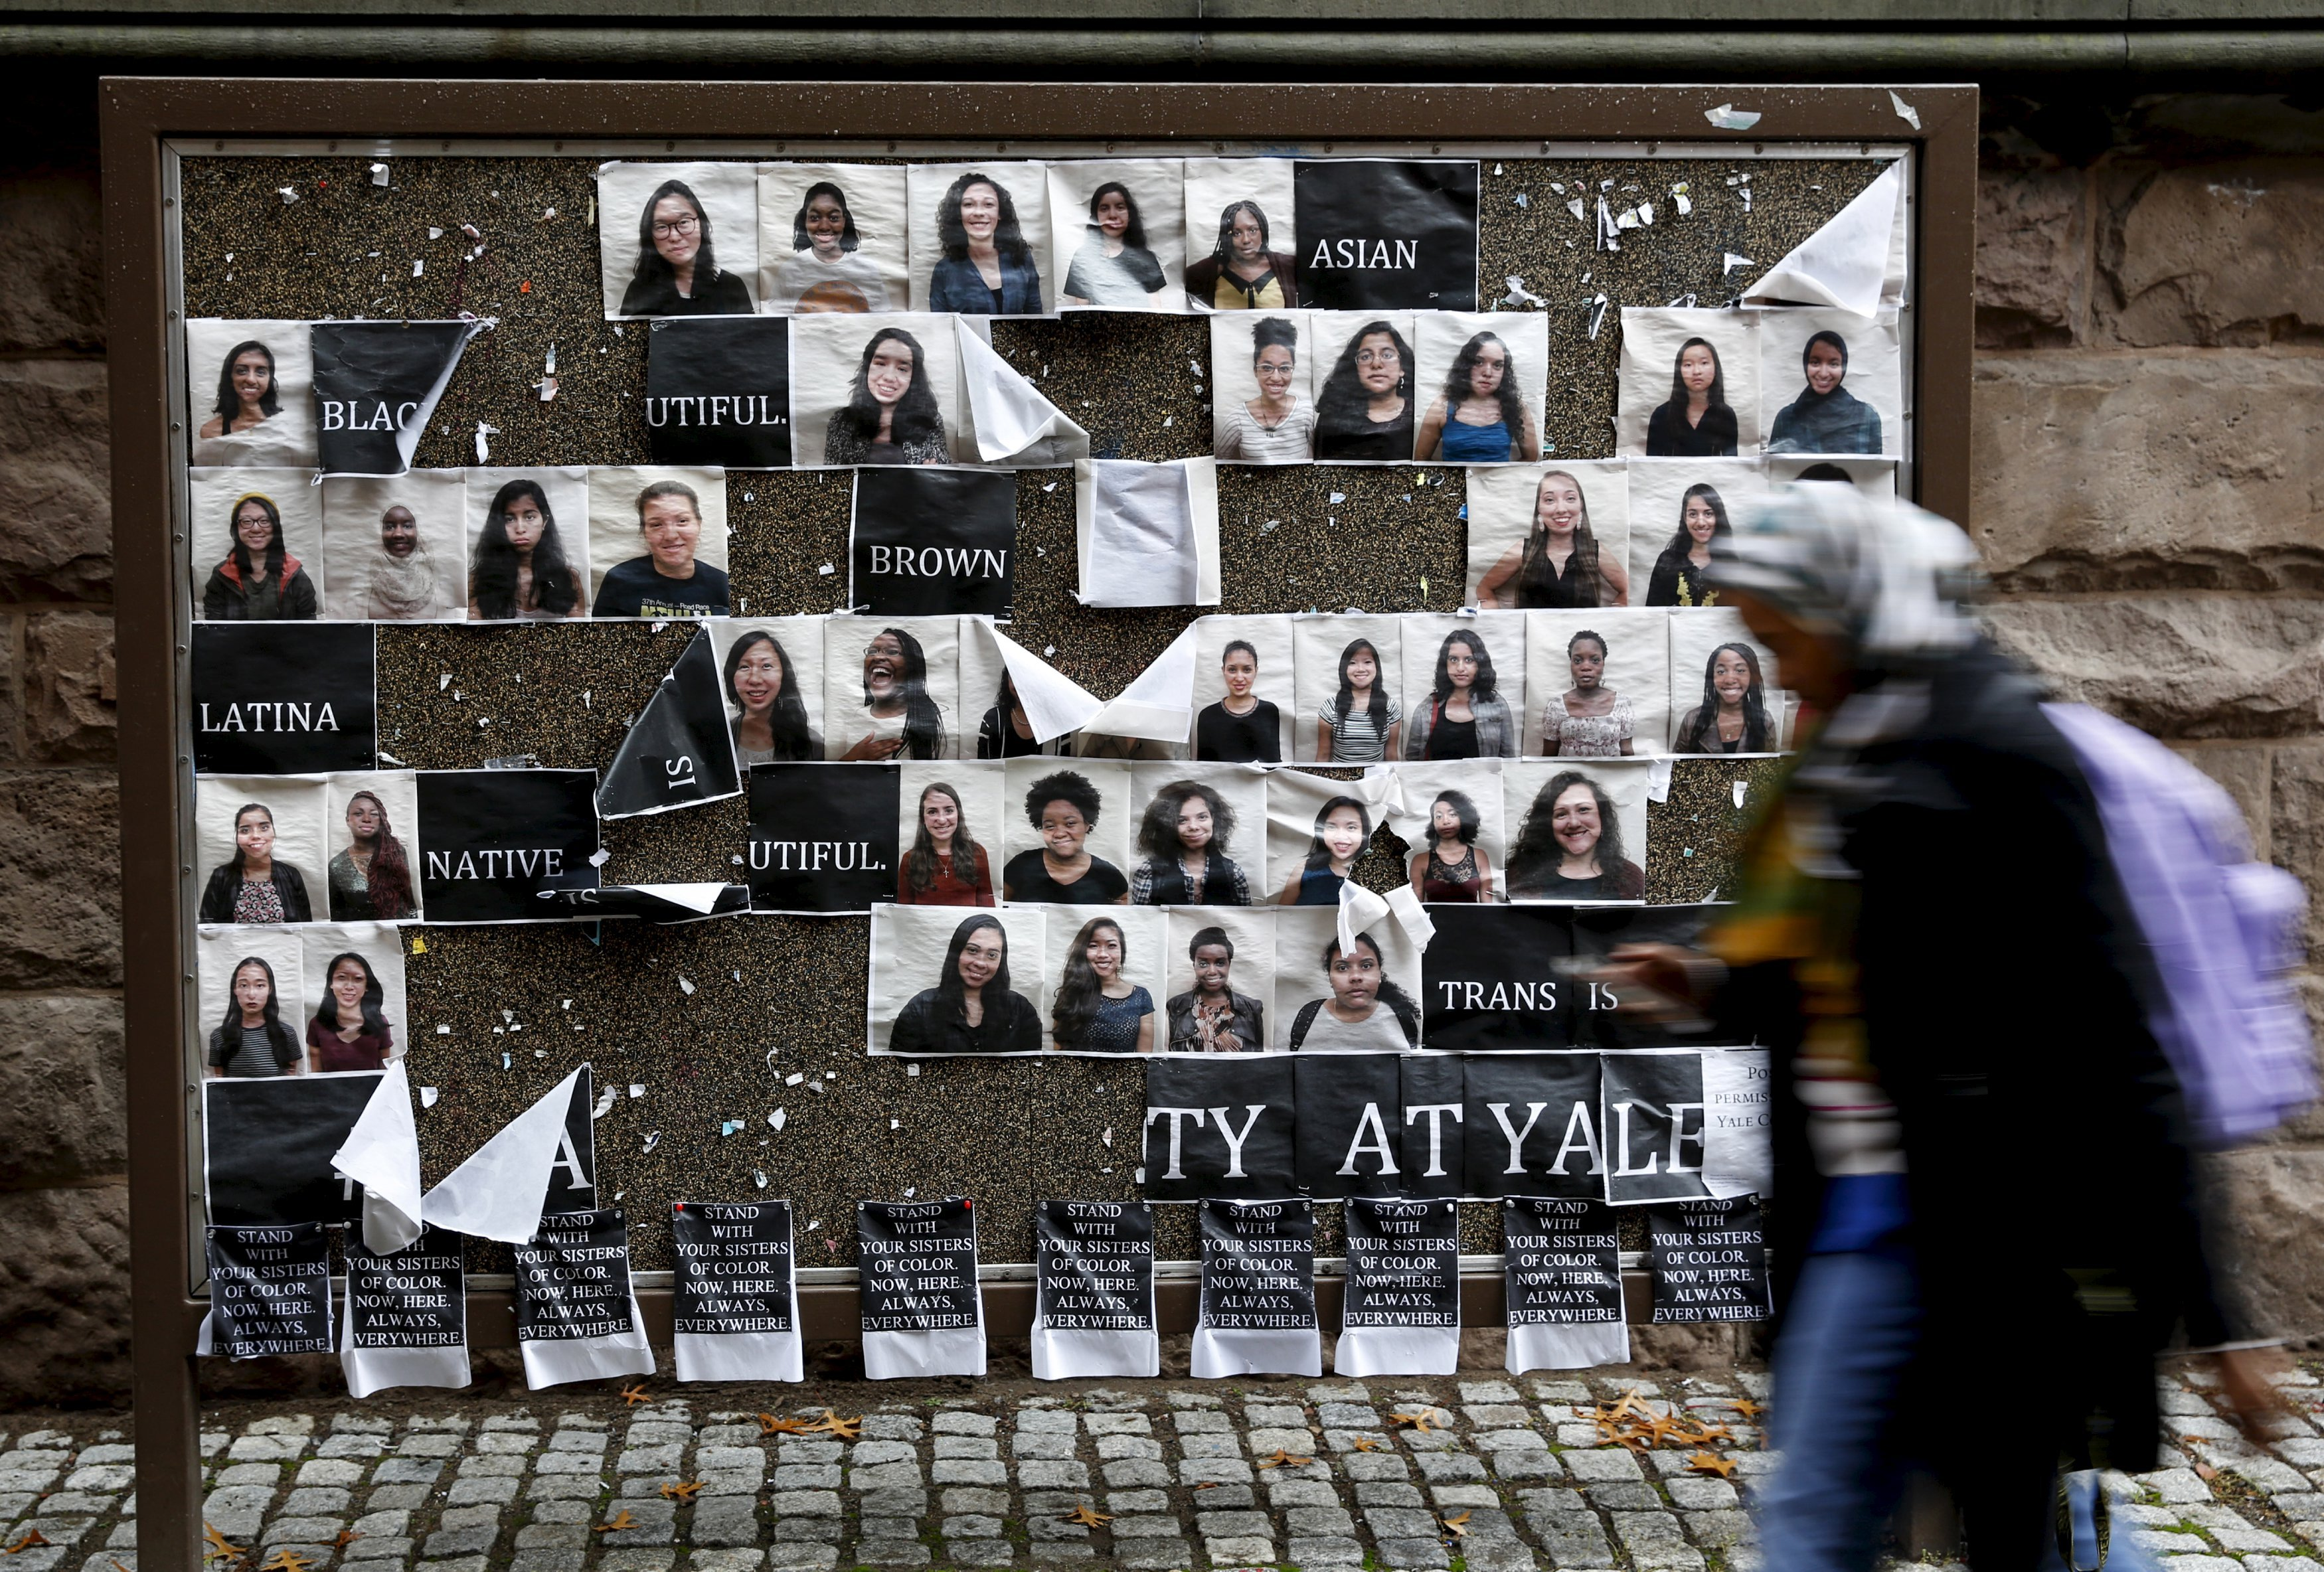 A student walks by a college noticeboard on campus at Yale University in New Haven, Connecticut on Nov. 12, 2015.